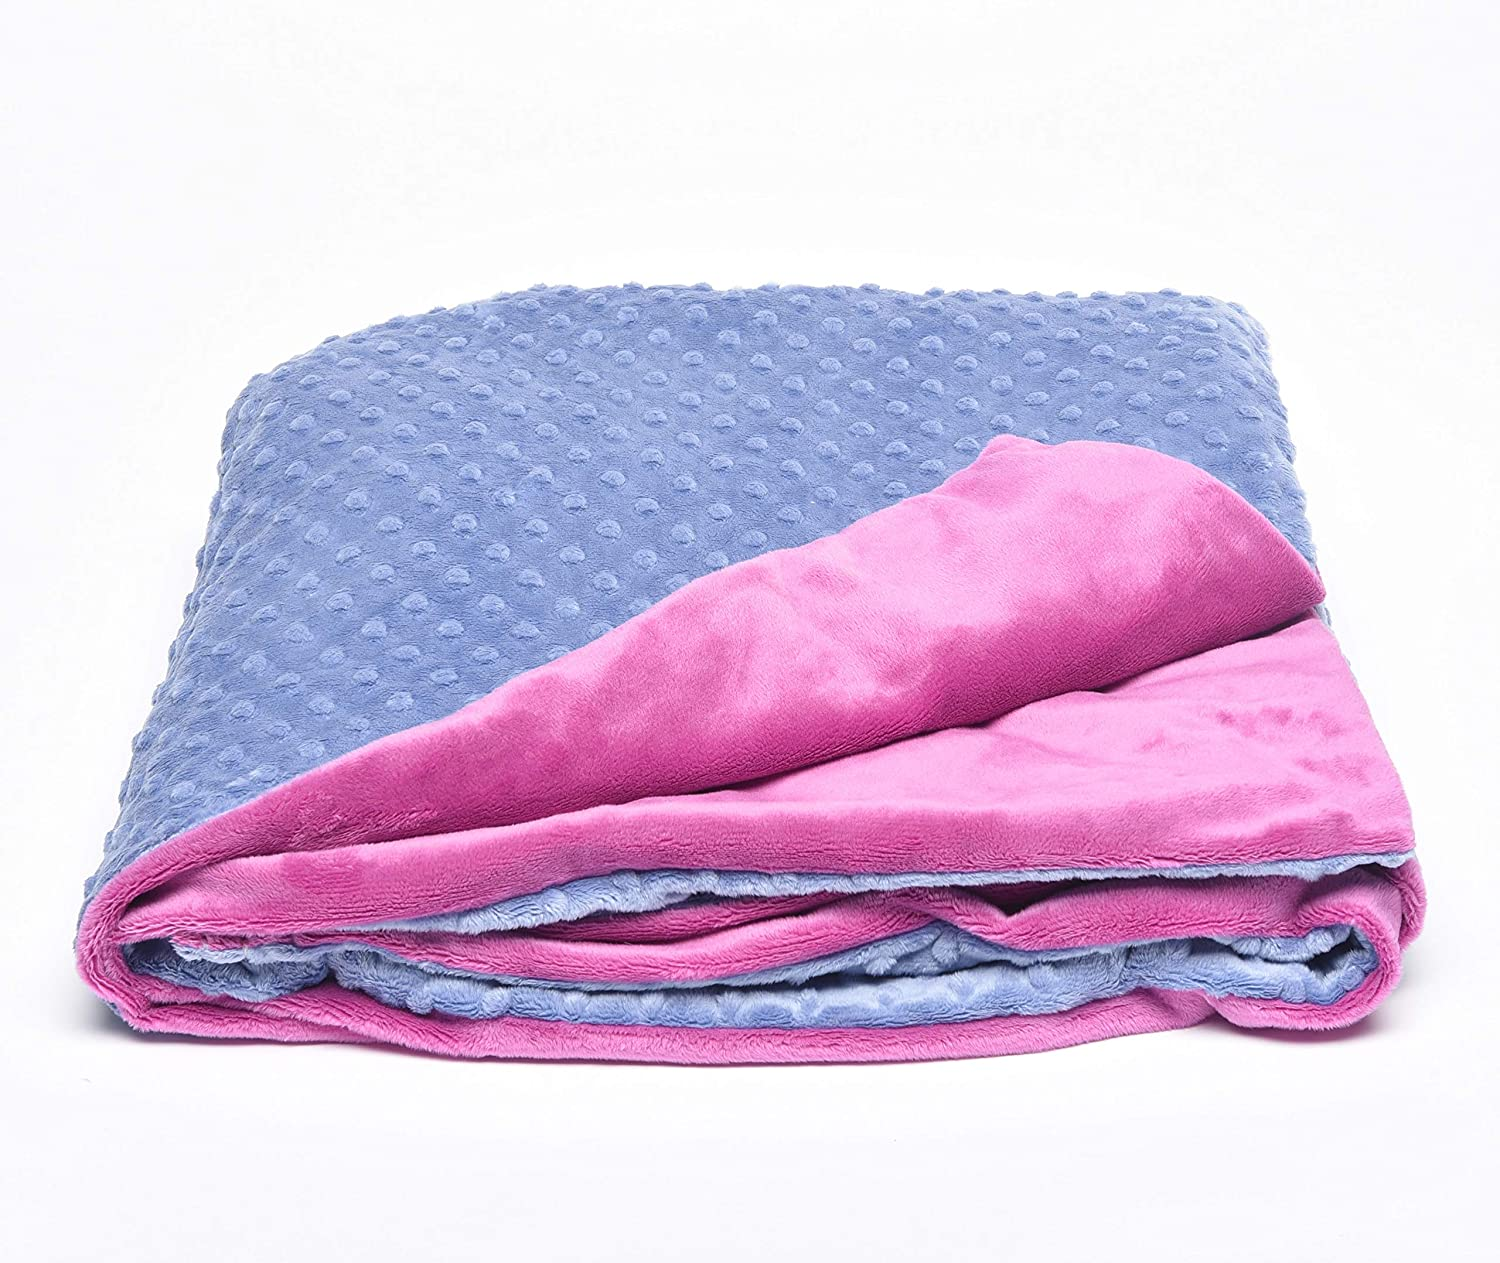 Creature Commforts Weighted Blanket for kids, adults - Sleep better - Great for ADHD, Autism, PTSD, Insomnia - Removable minky cover, organic insert - made in USA - - Small 4 lbs 25x30 Pink SI-CRCO-BL-S-R